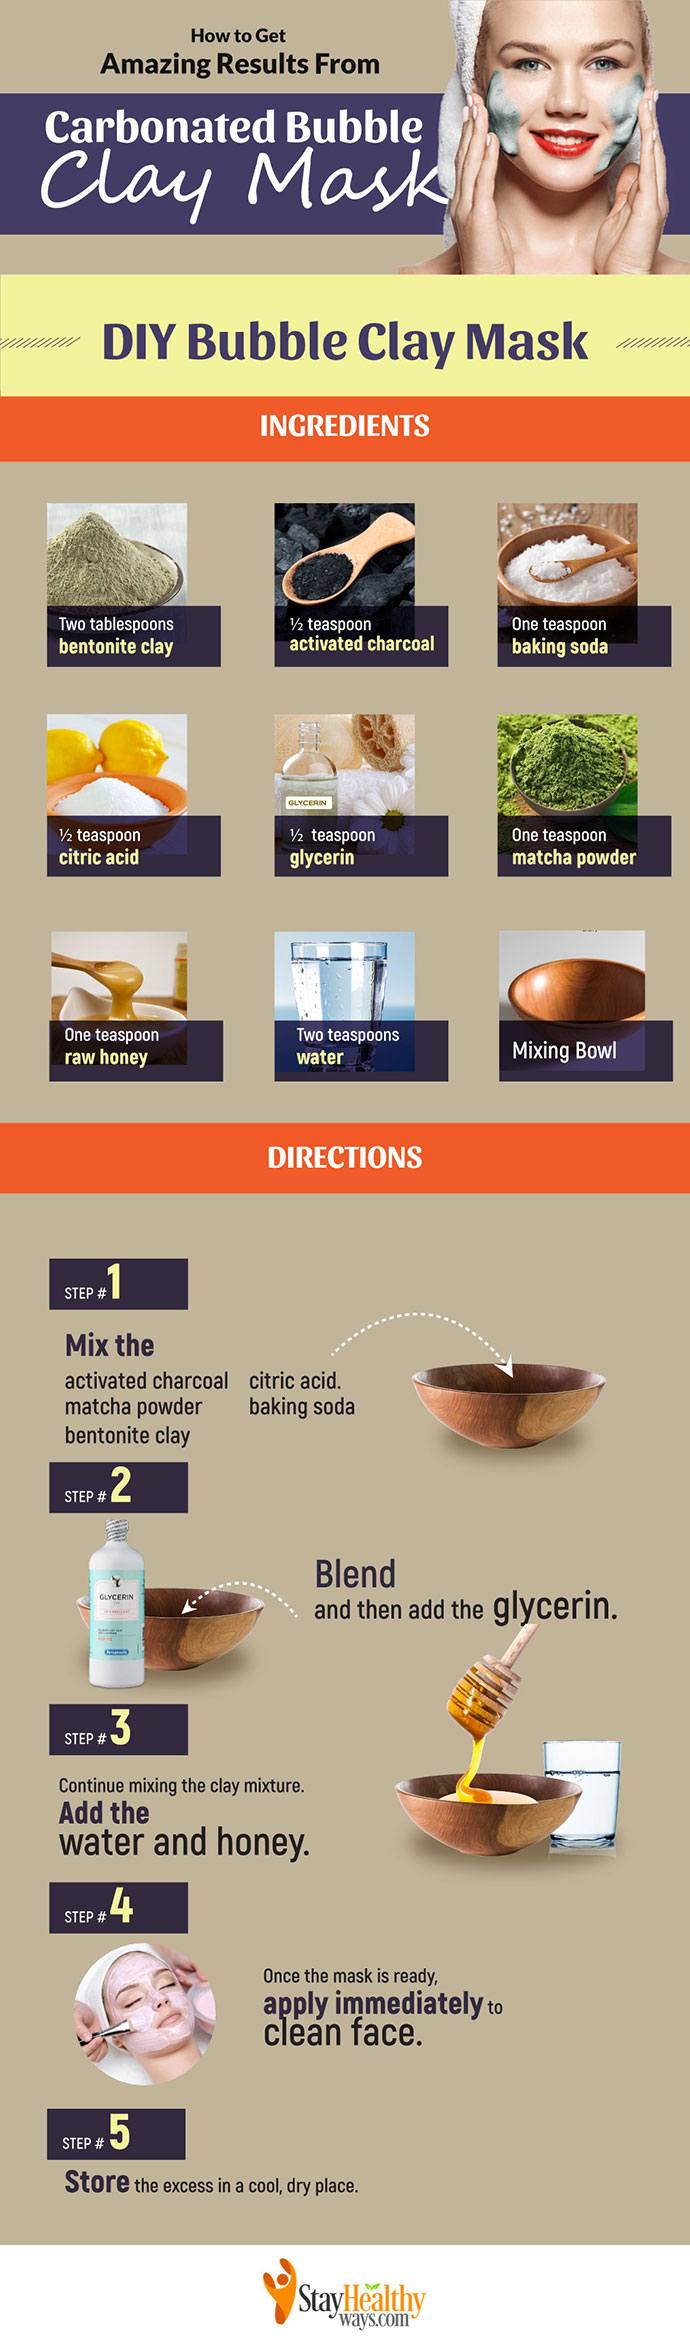 carbonated bubble clay mask infographic